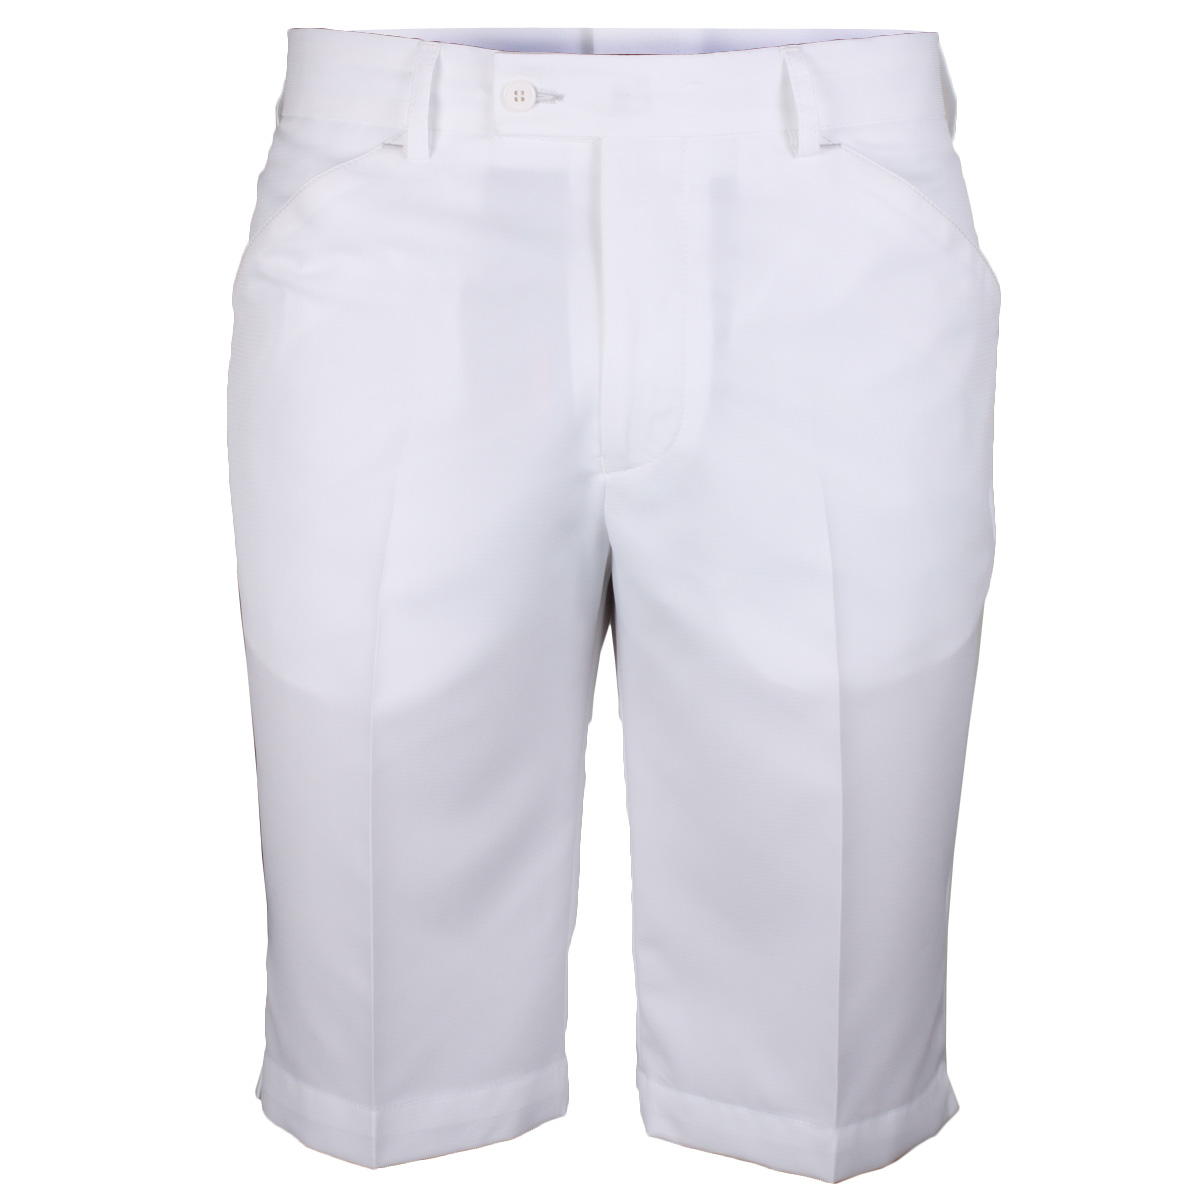 Find Men's Slim Golf Clothing at cuttackfirstboutique.cf Enjoy free shipping and returns with NikePlus. Click for a different version of this web site containing similar content optimized for screen readers. RETURN HOME SKIP TO MAIN CONTENT. Men's Slim Fit Golf Pants. $ Prev. Next. 5 Colors.